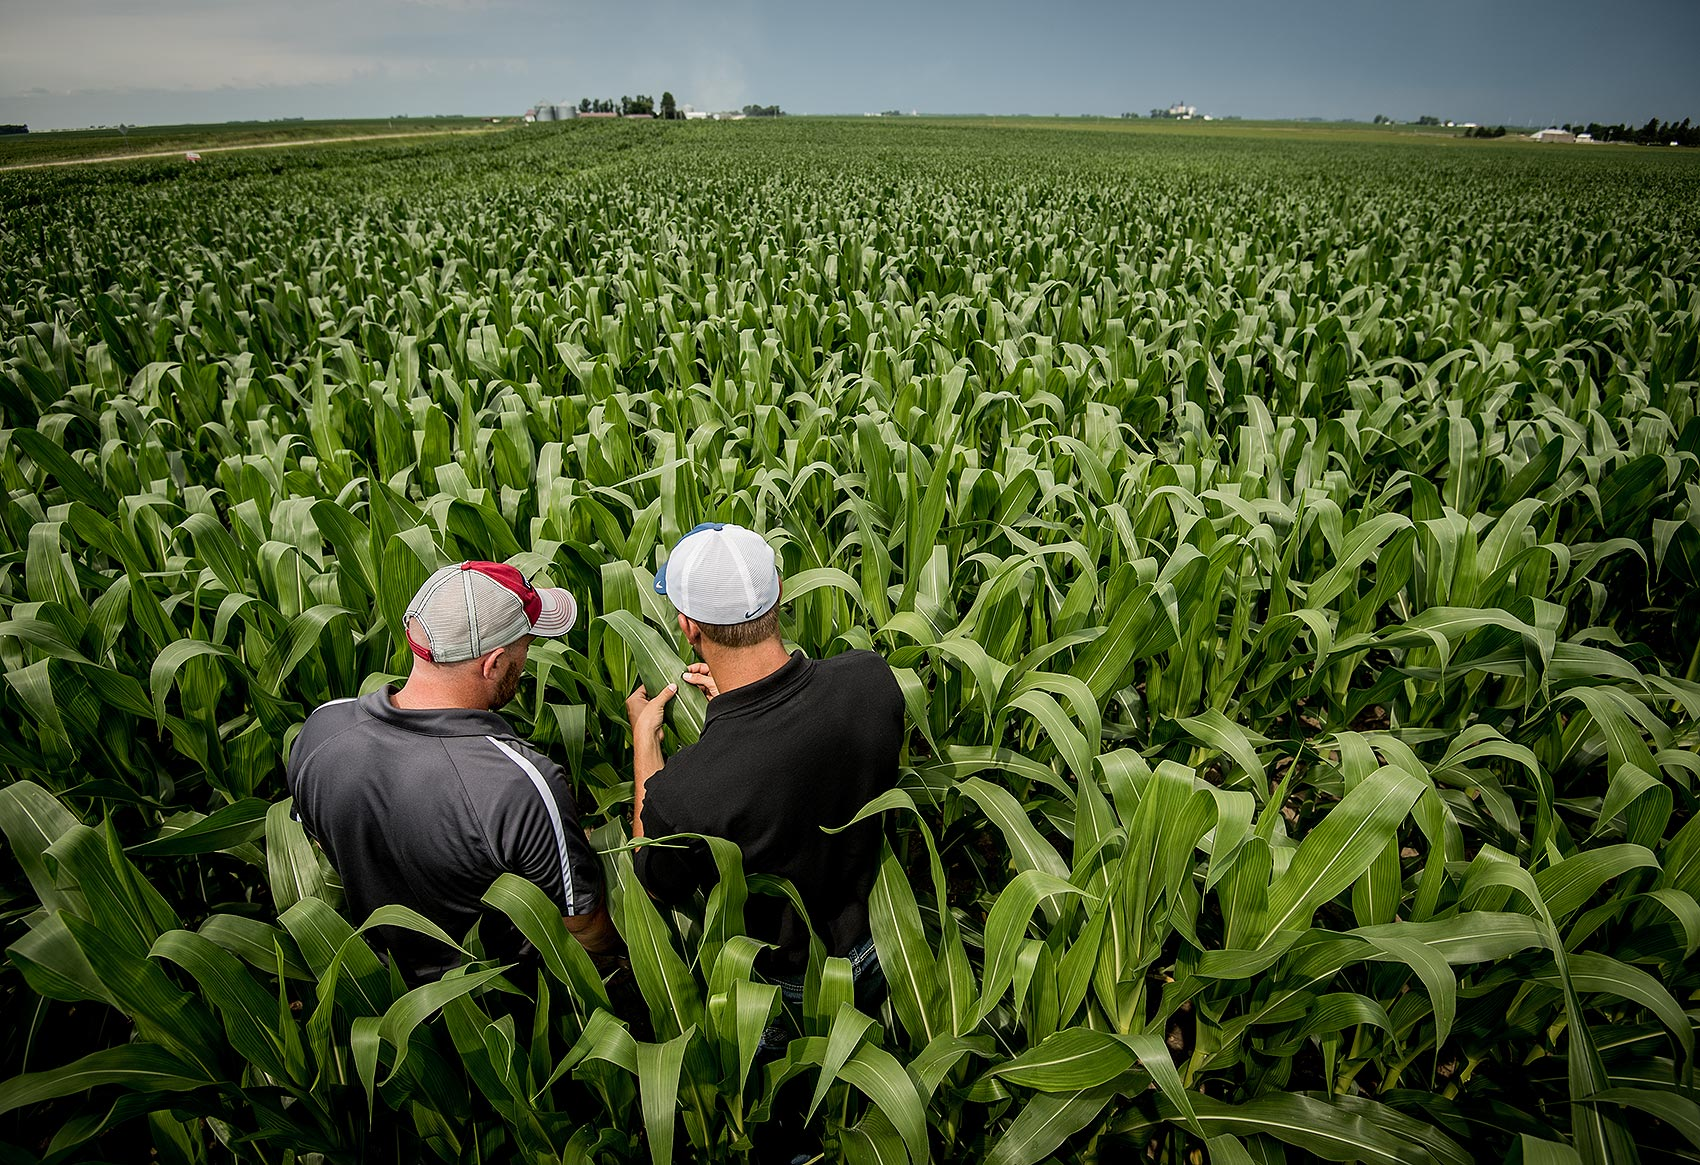 Agronomists Checking Corn in Field